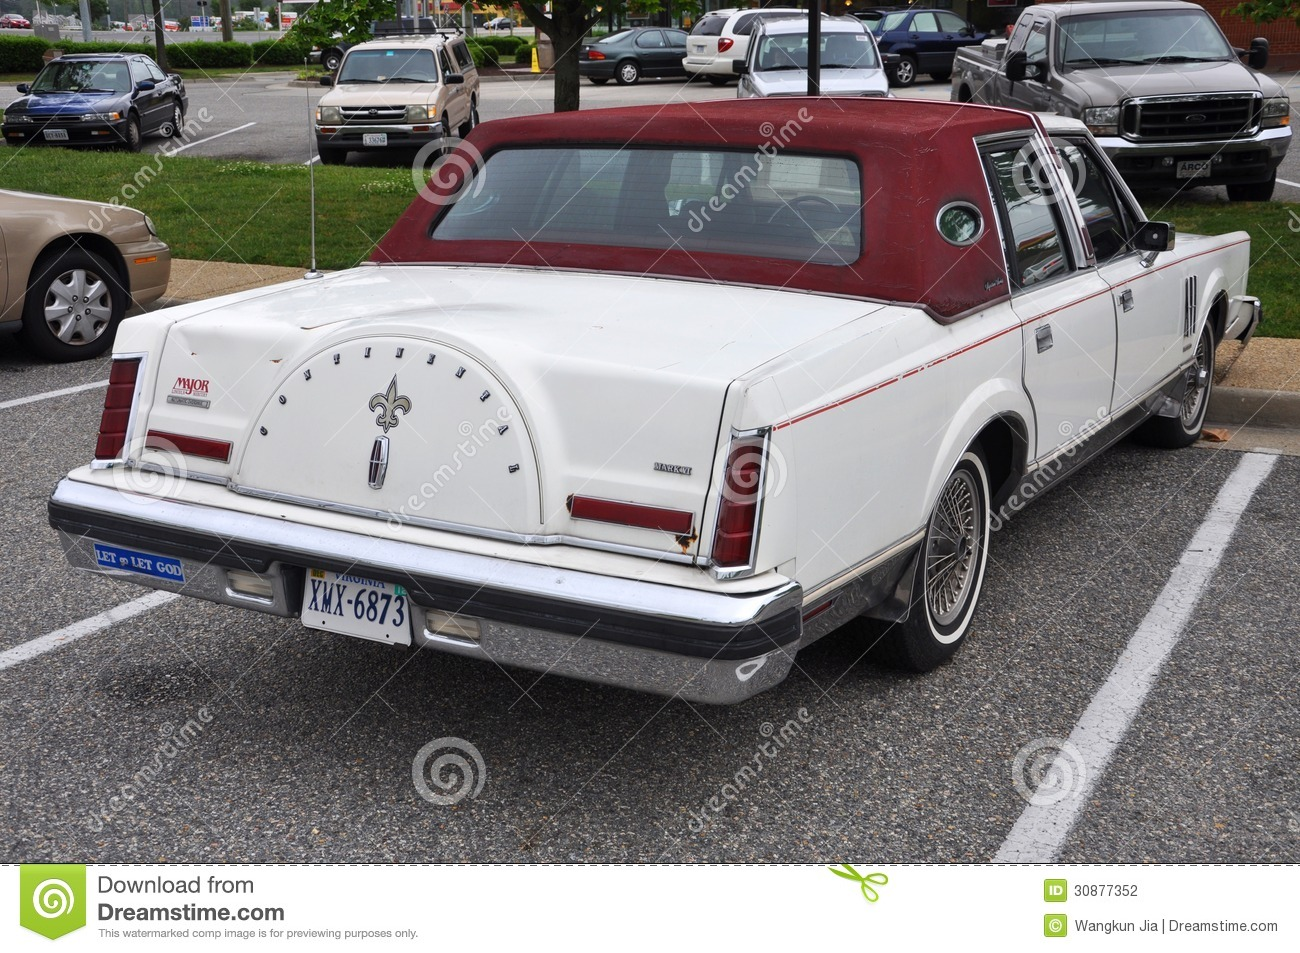 1980 lincoln continental mark vi editorial photography for Current ford motor co stock price